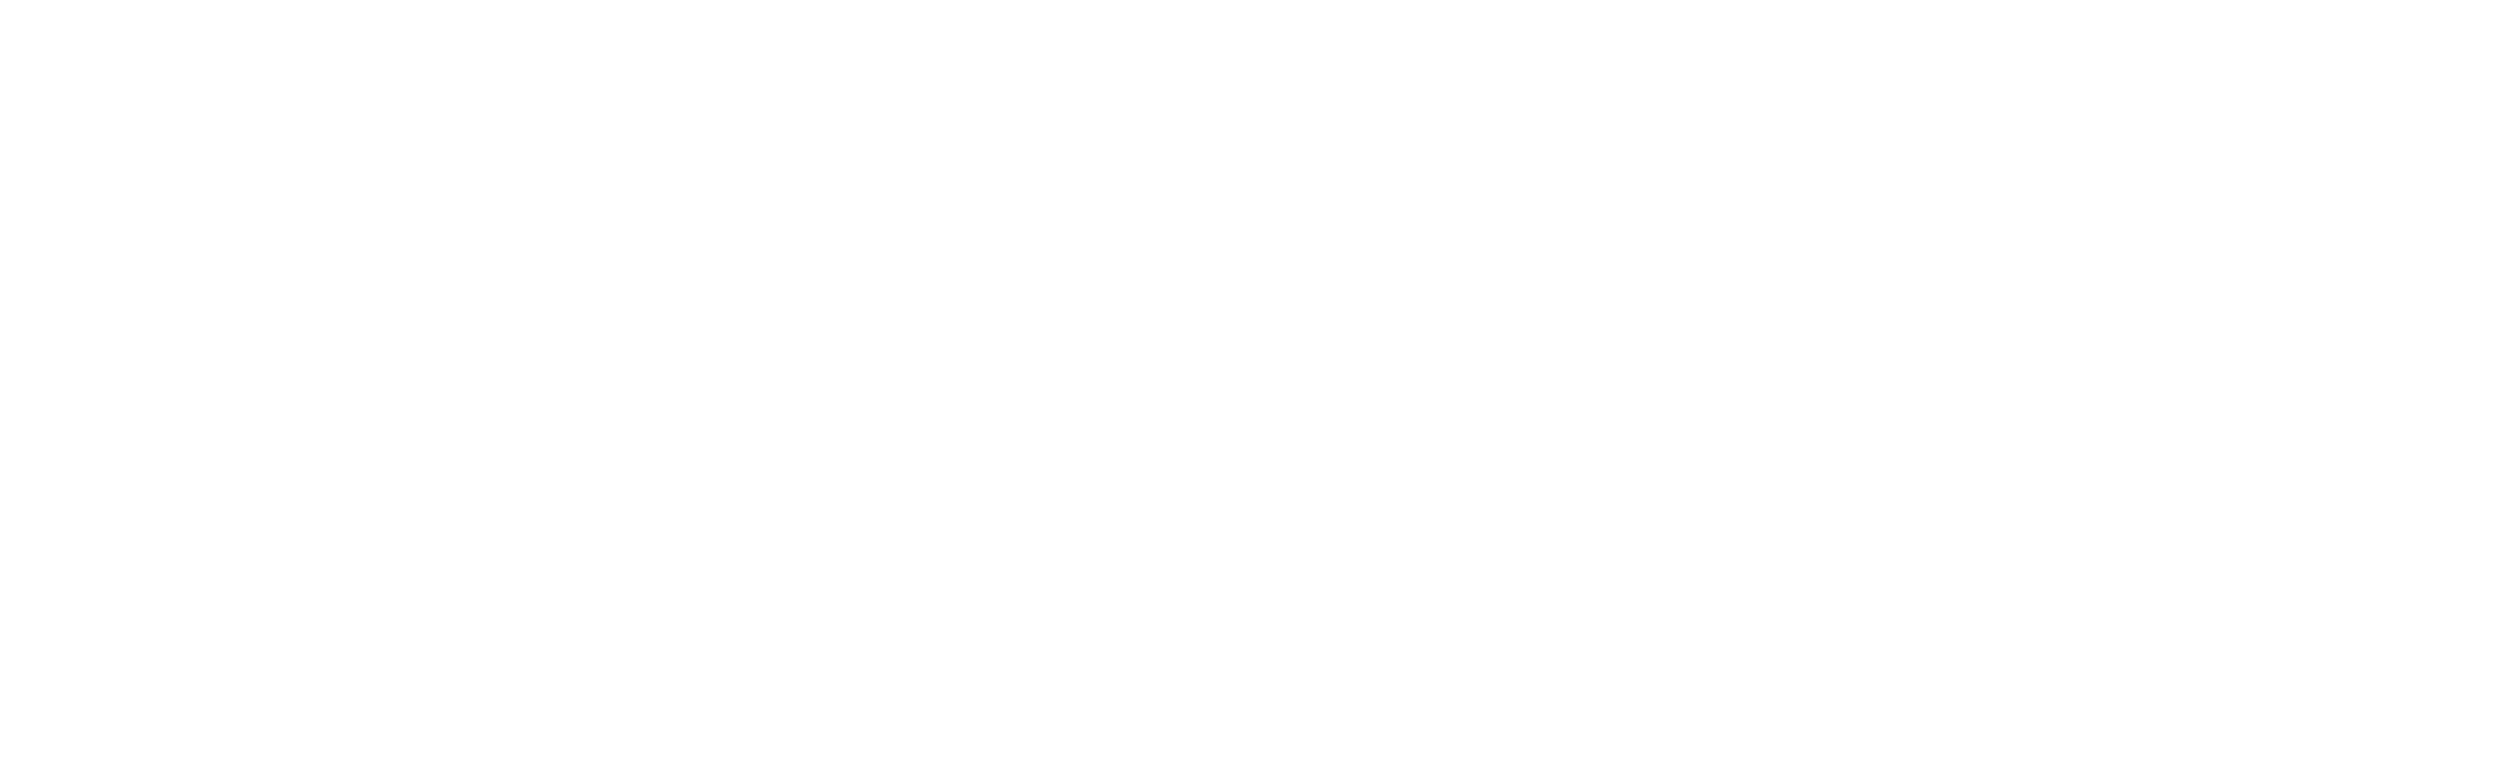 gallerylogowh.png